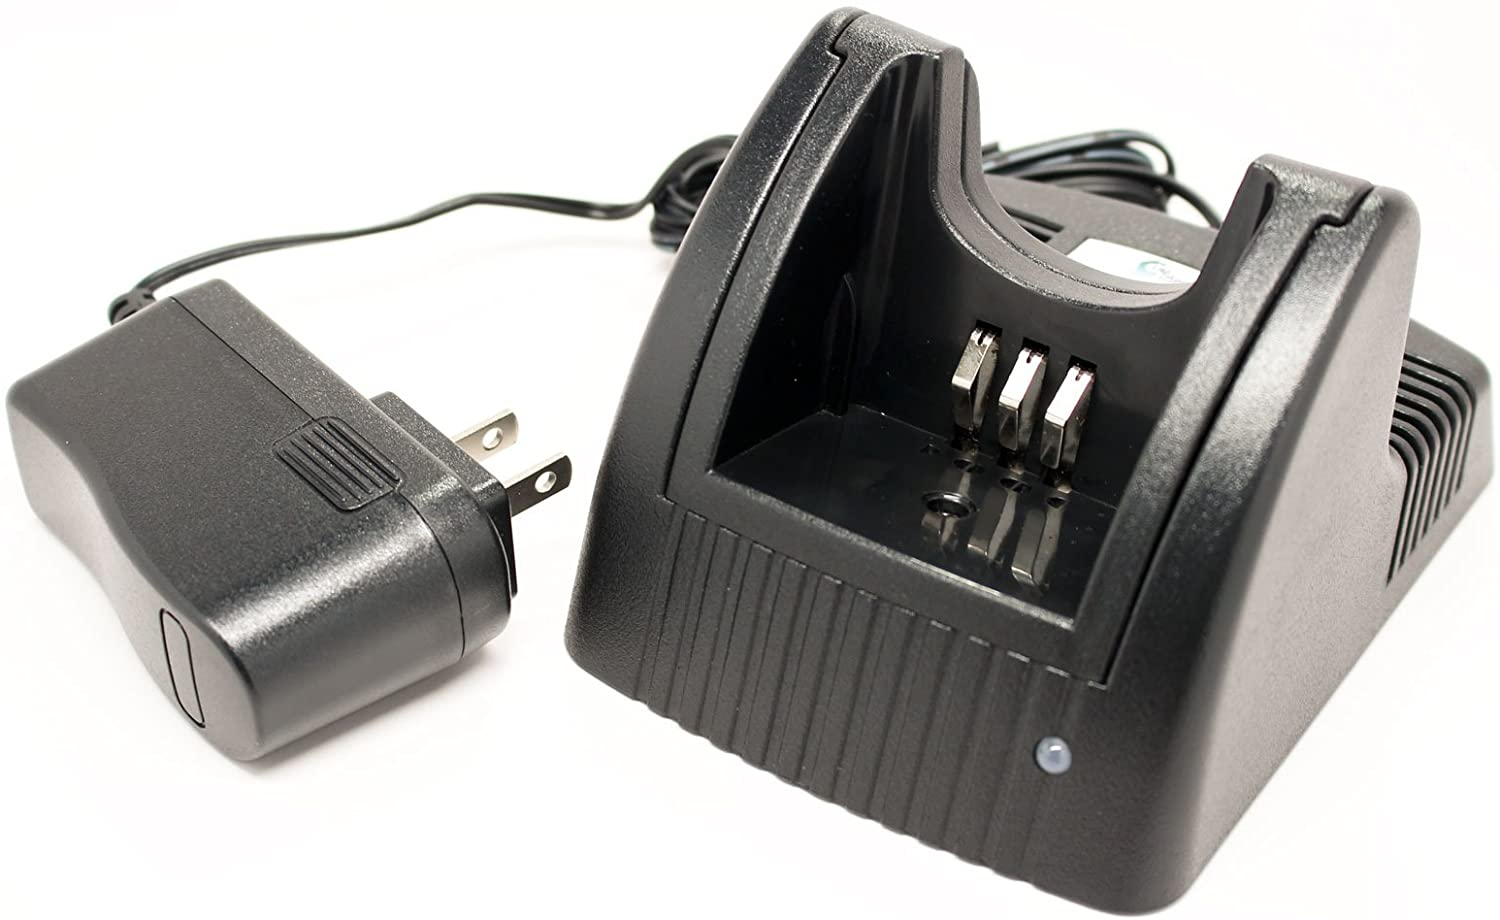 Motorola NNTN4851A Two-Way Radio Charger Replacement (100-240V) - Compatible with Motorola CP200XLS, CP200, PR400, CP200XLS, CP150, EP450, CP040, NNTN4497, CP140, CP160, CP180, GP3188, GP3688, MTX888, NNTN4851, NNTN4970, NNTN4496AR, NNTN4851A, CP340, CP360, CP380, GP3138, NNTN4496, MTX1000, NTN4851, NNTN4851AR, NNTN4851R